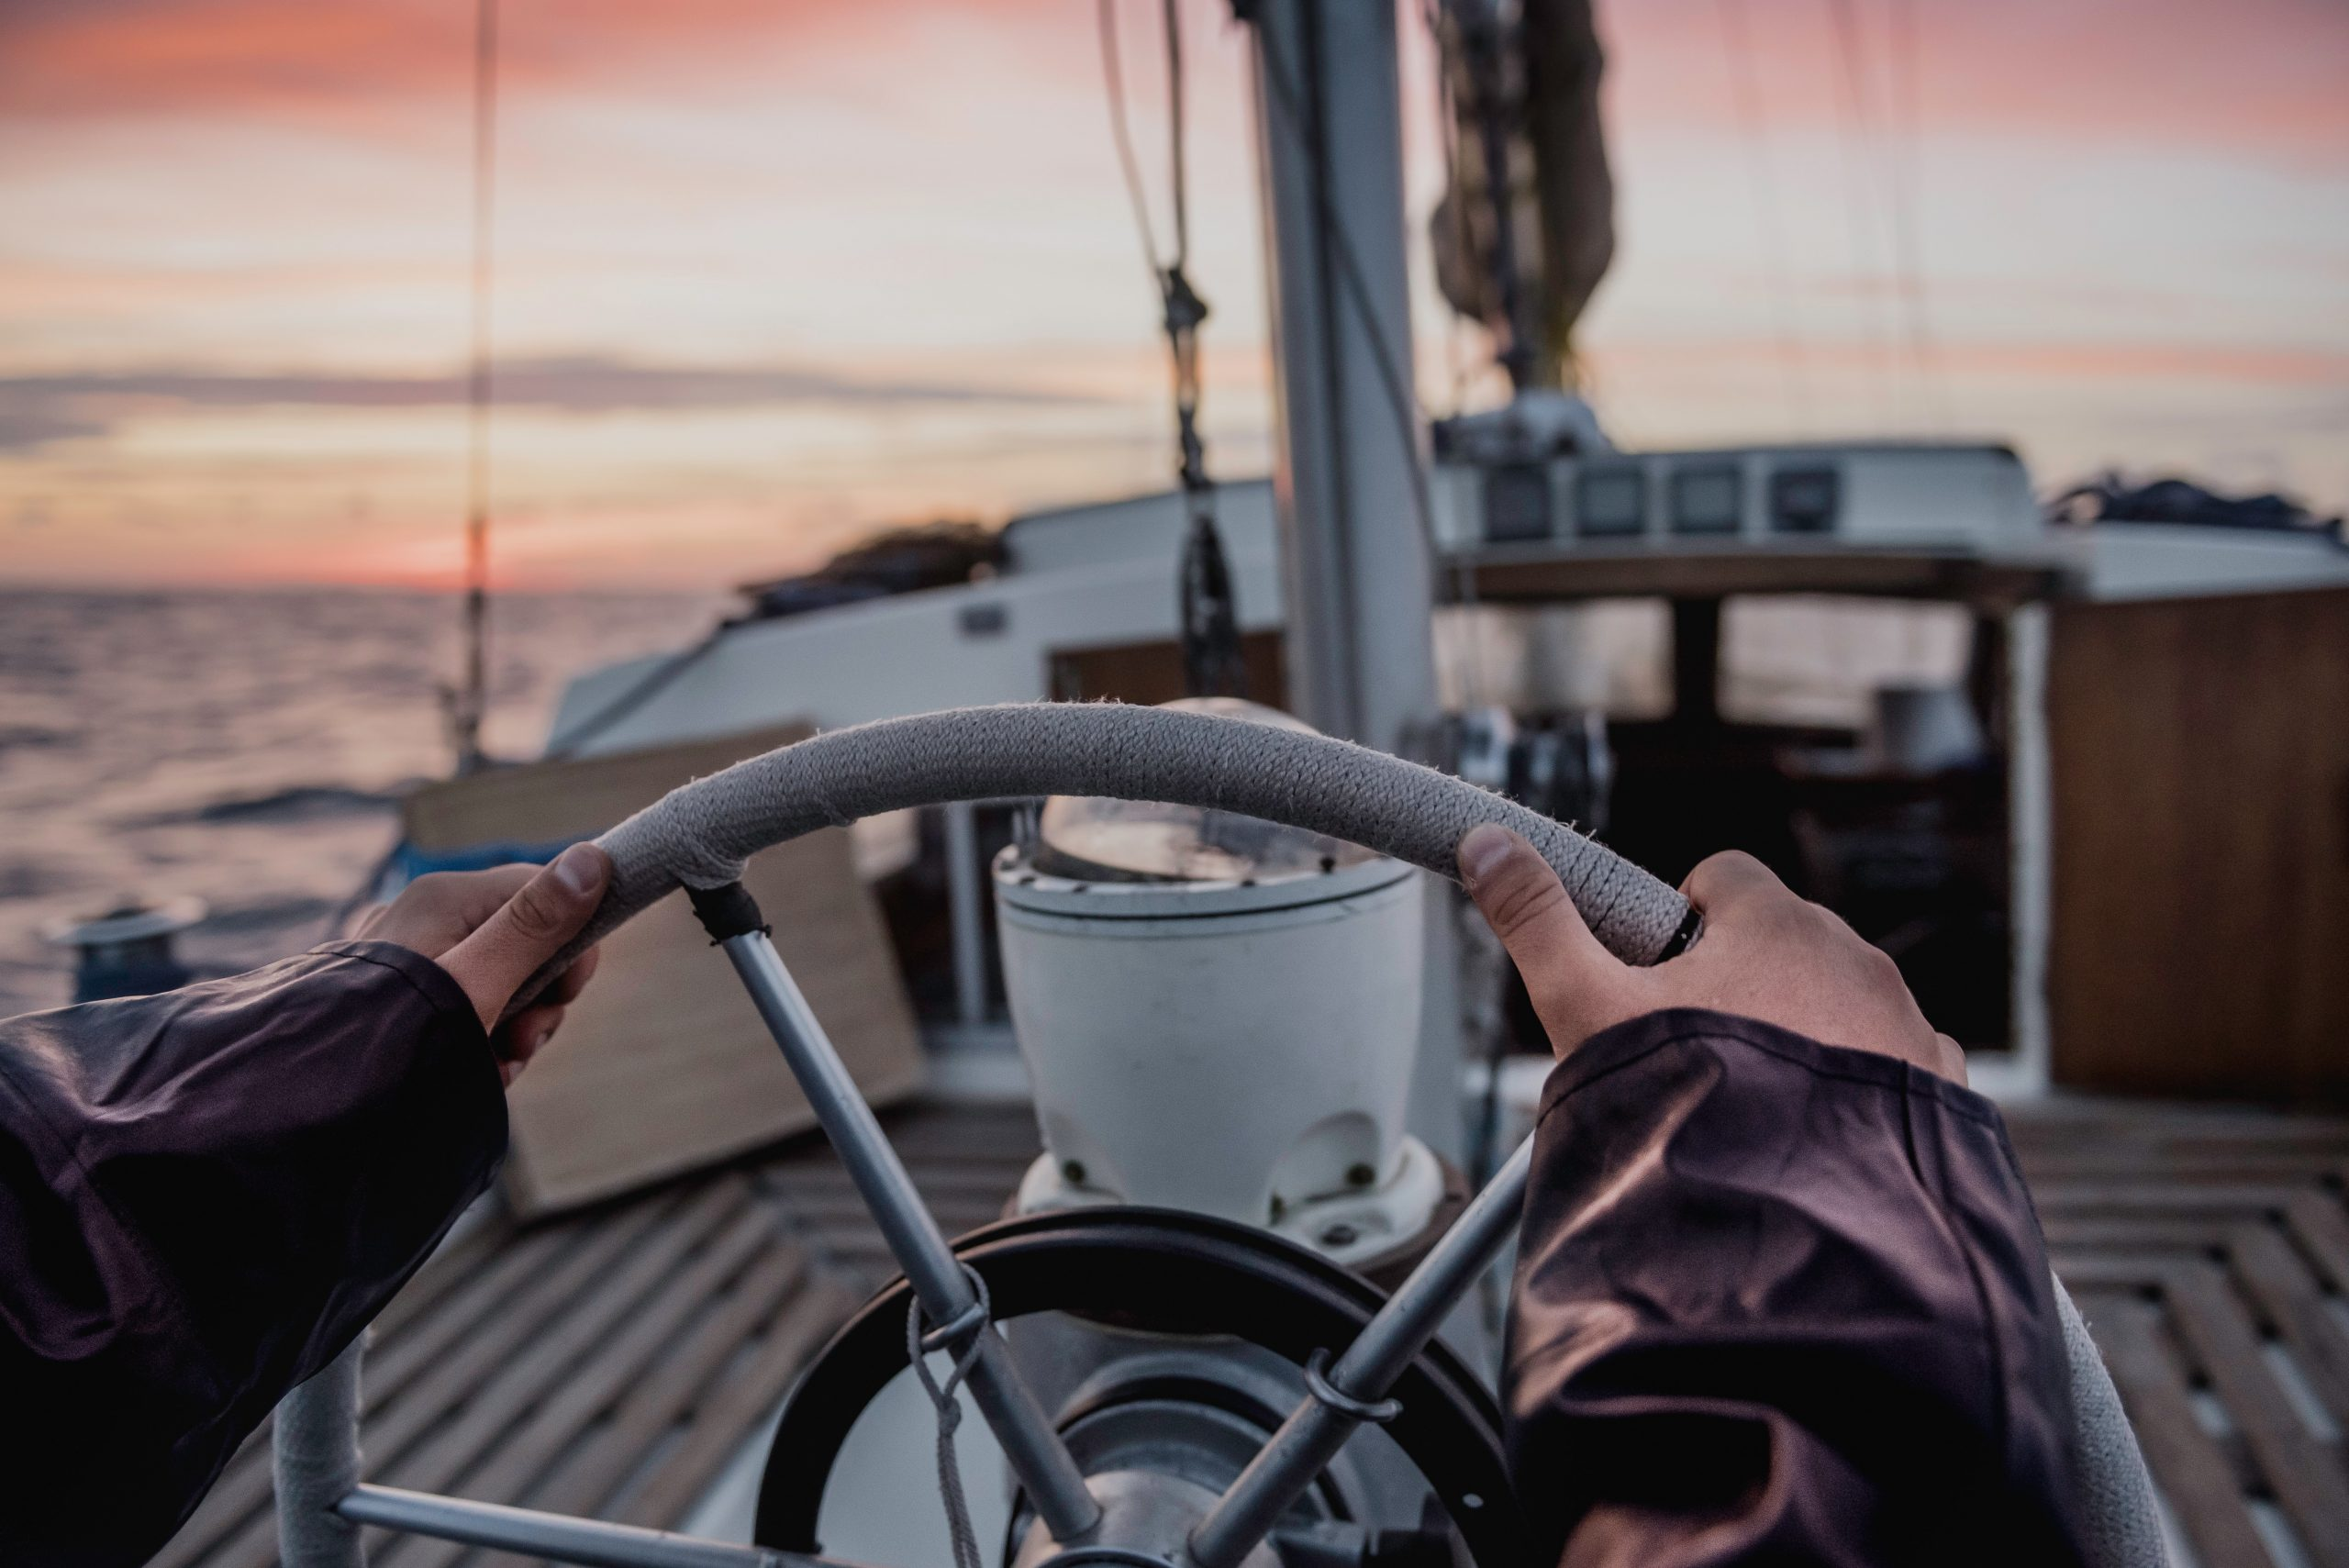 The steering wheel of a boat